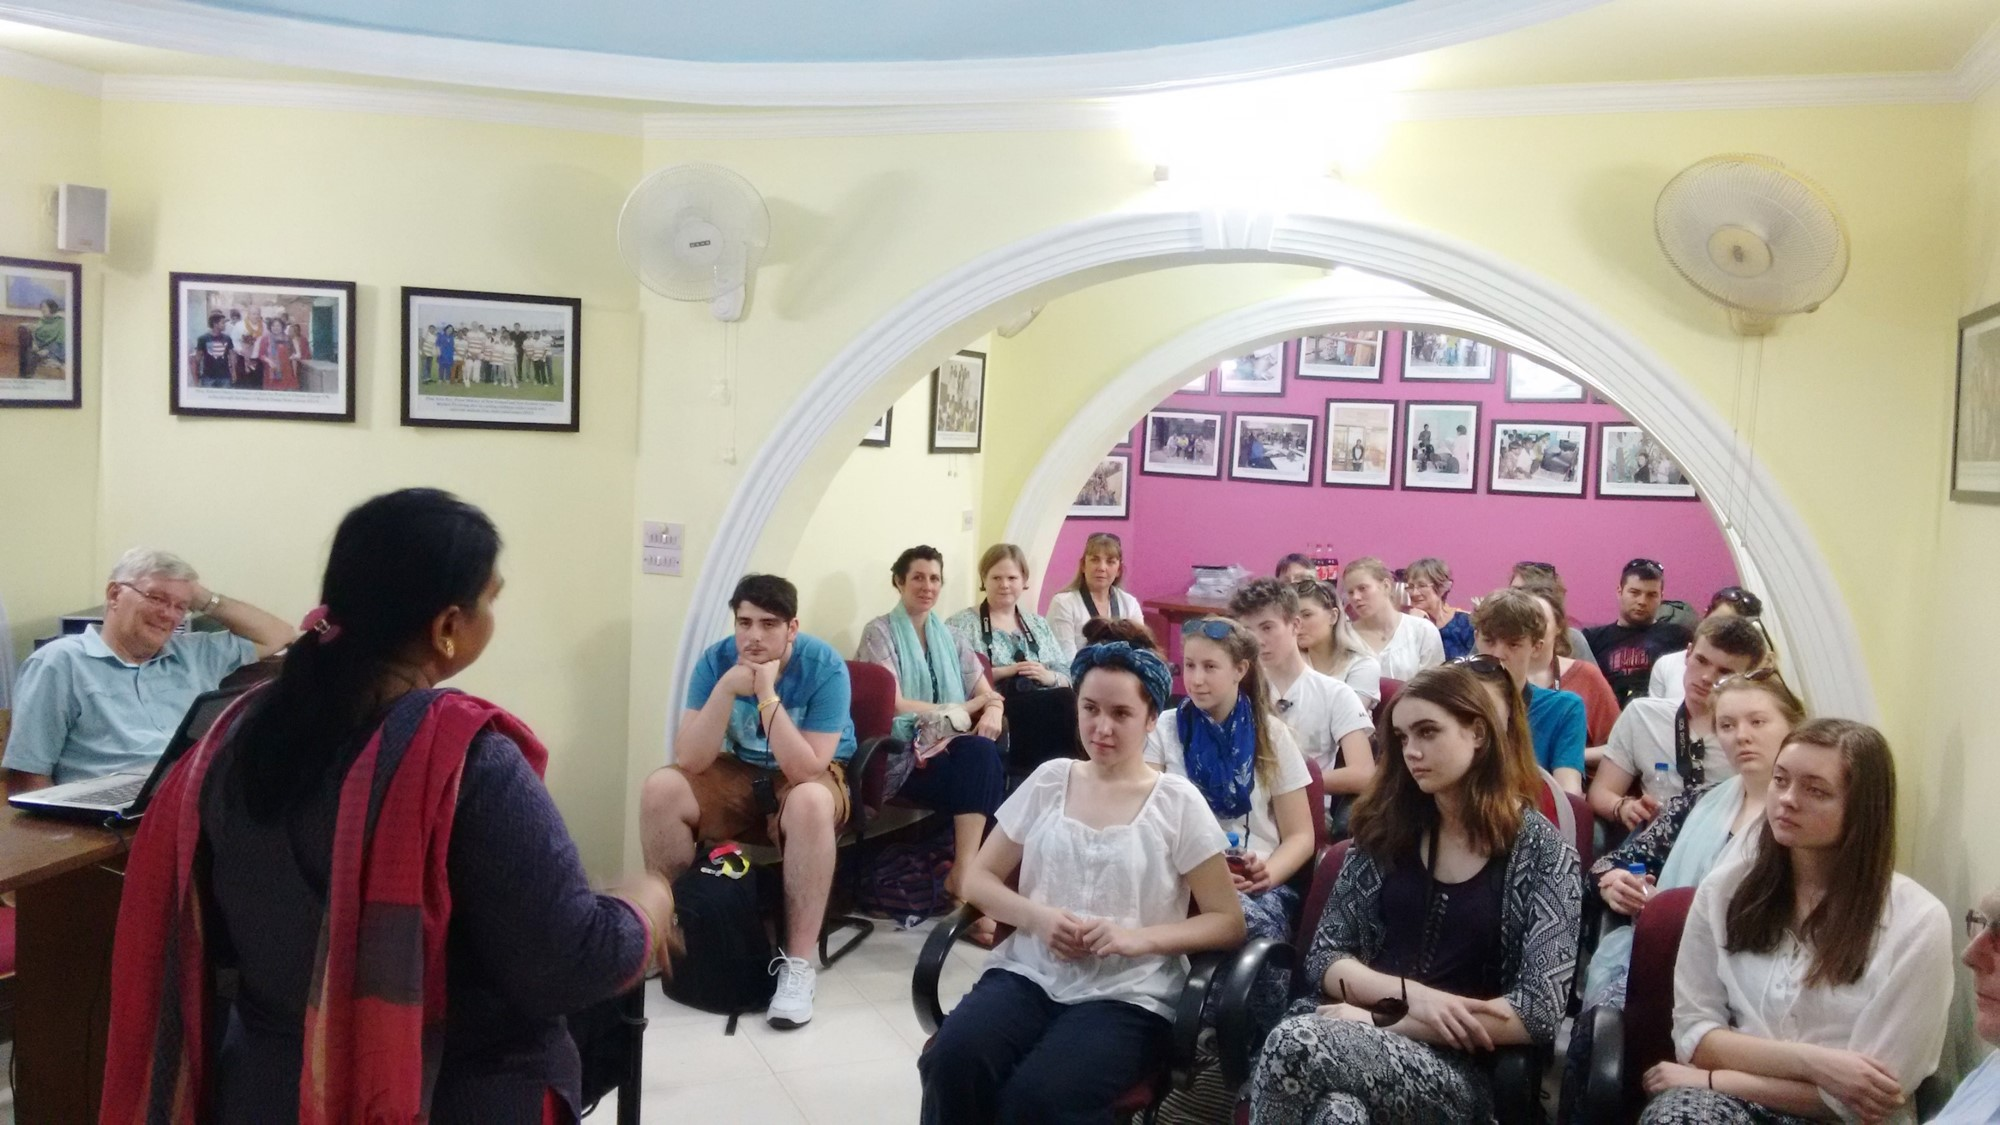 Before visiting the slum, the Asha team orienting the students about the work done at Delhi slums